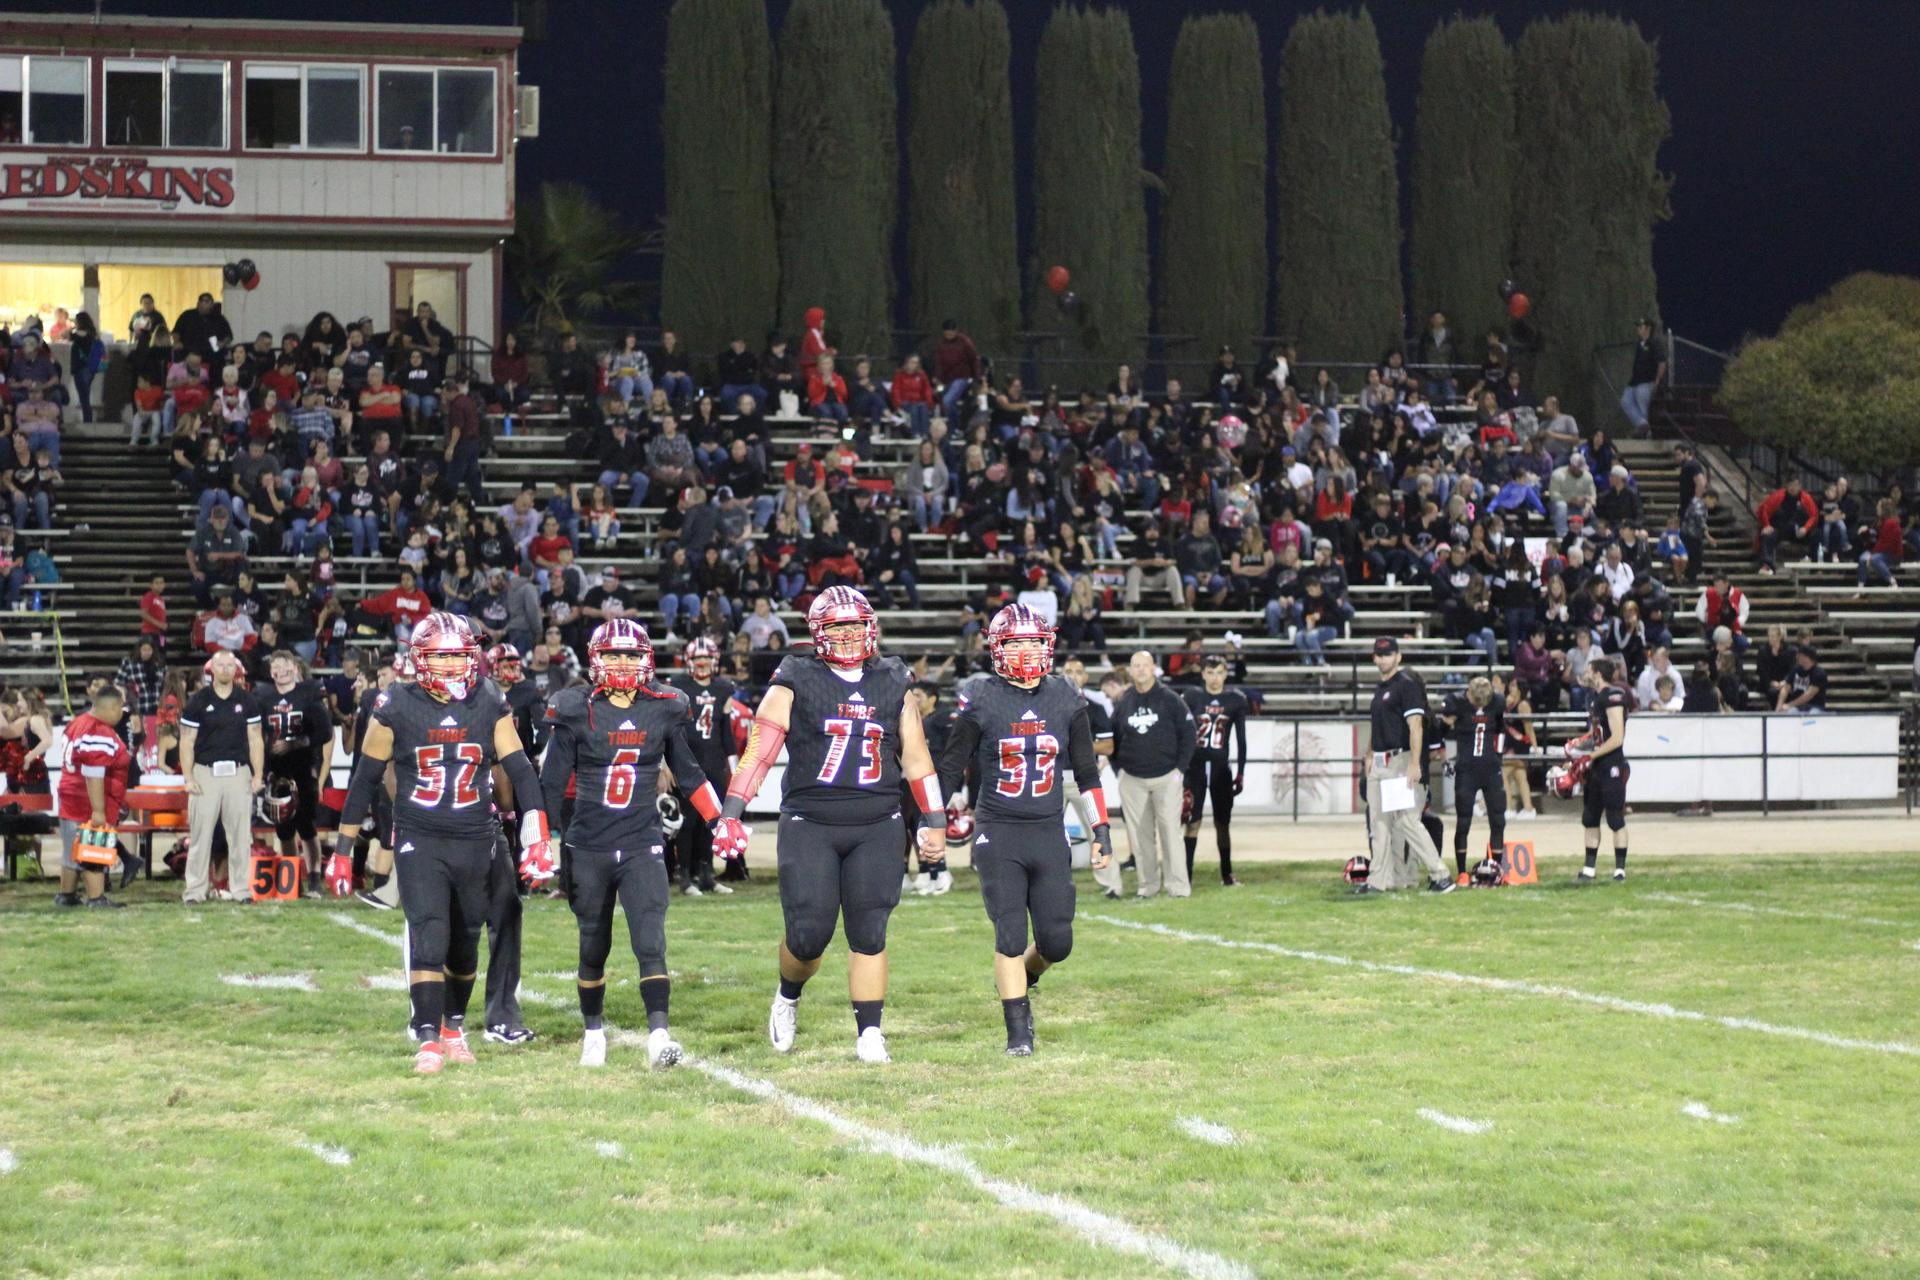 Tribe Varsity Football Players Walking to the Coin Toss